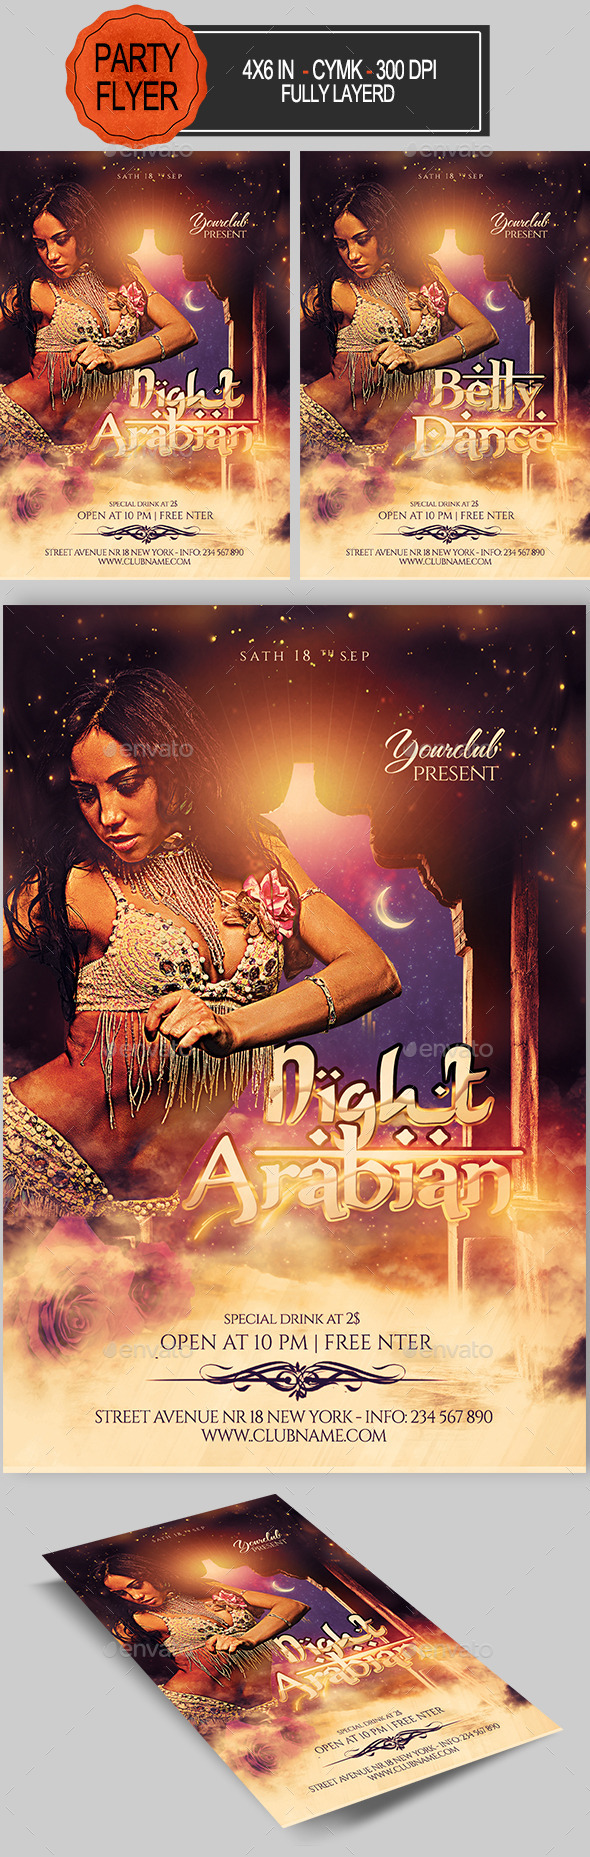 Arabian Belly Dance Party Flyer